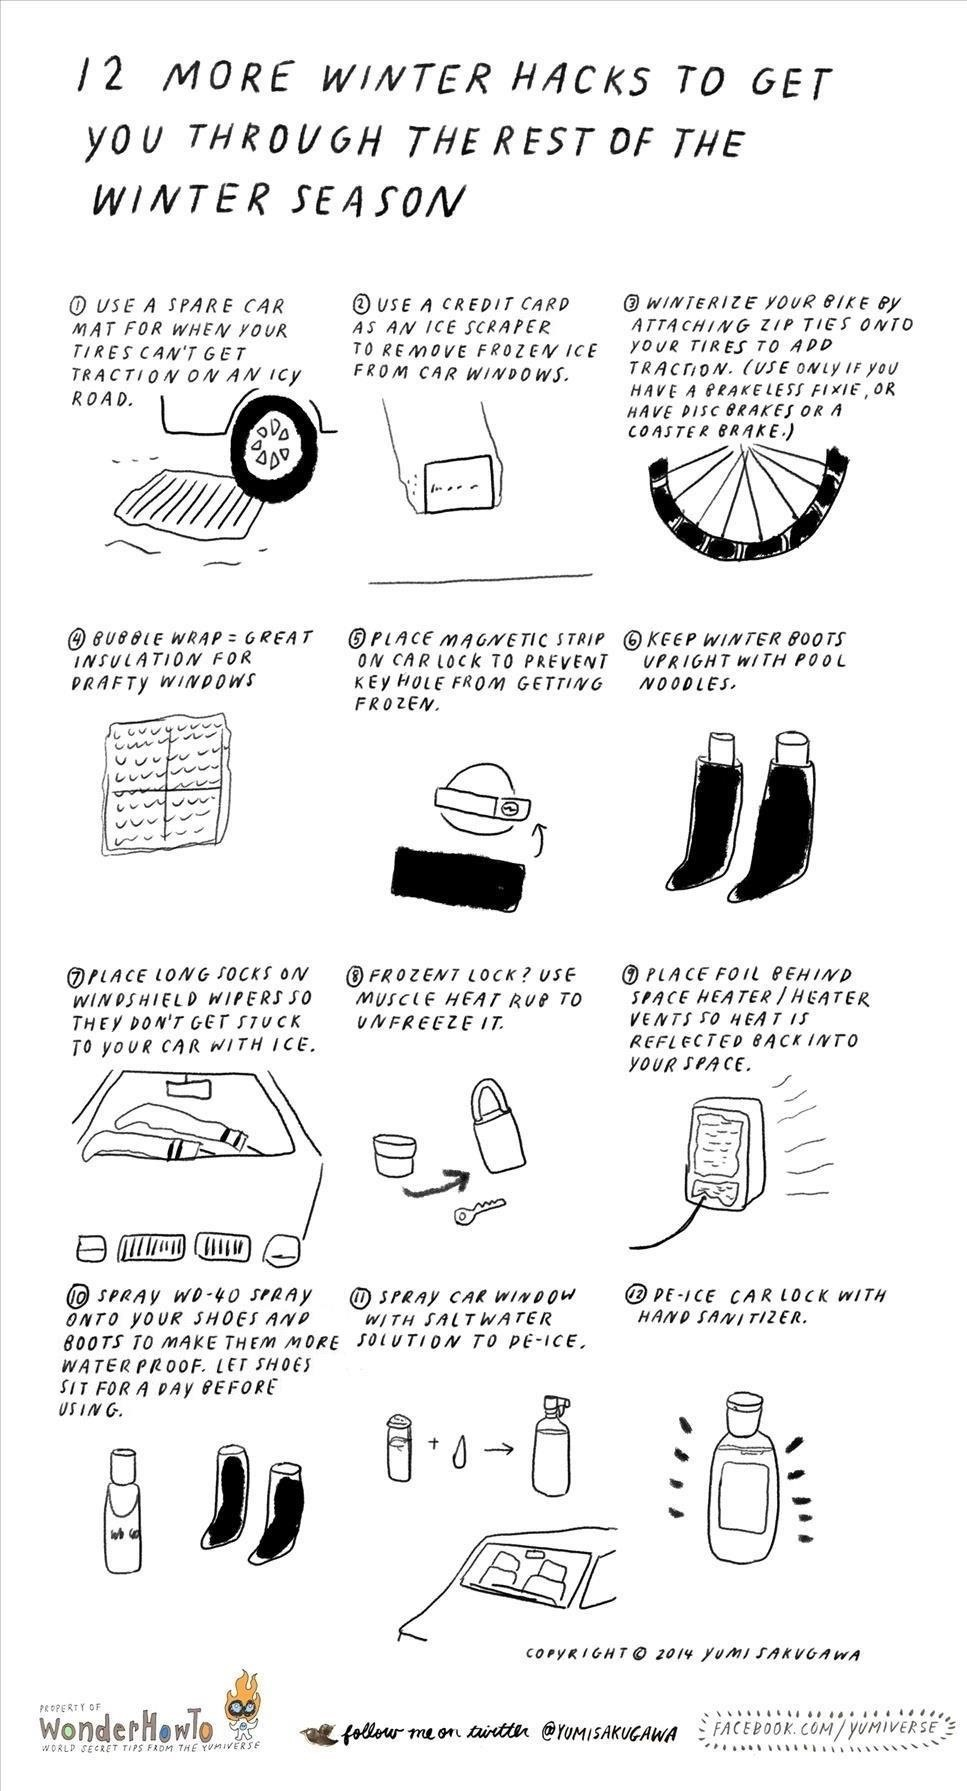 12 More Cold Winter Hacks to Get You Through the Rest of the Winter Season